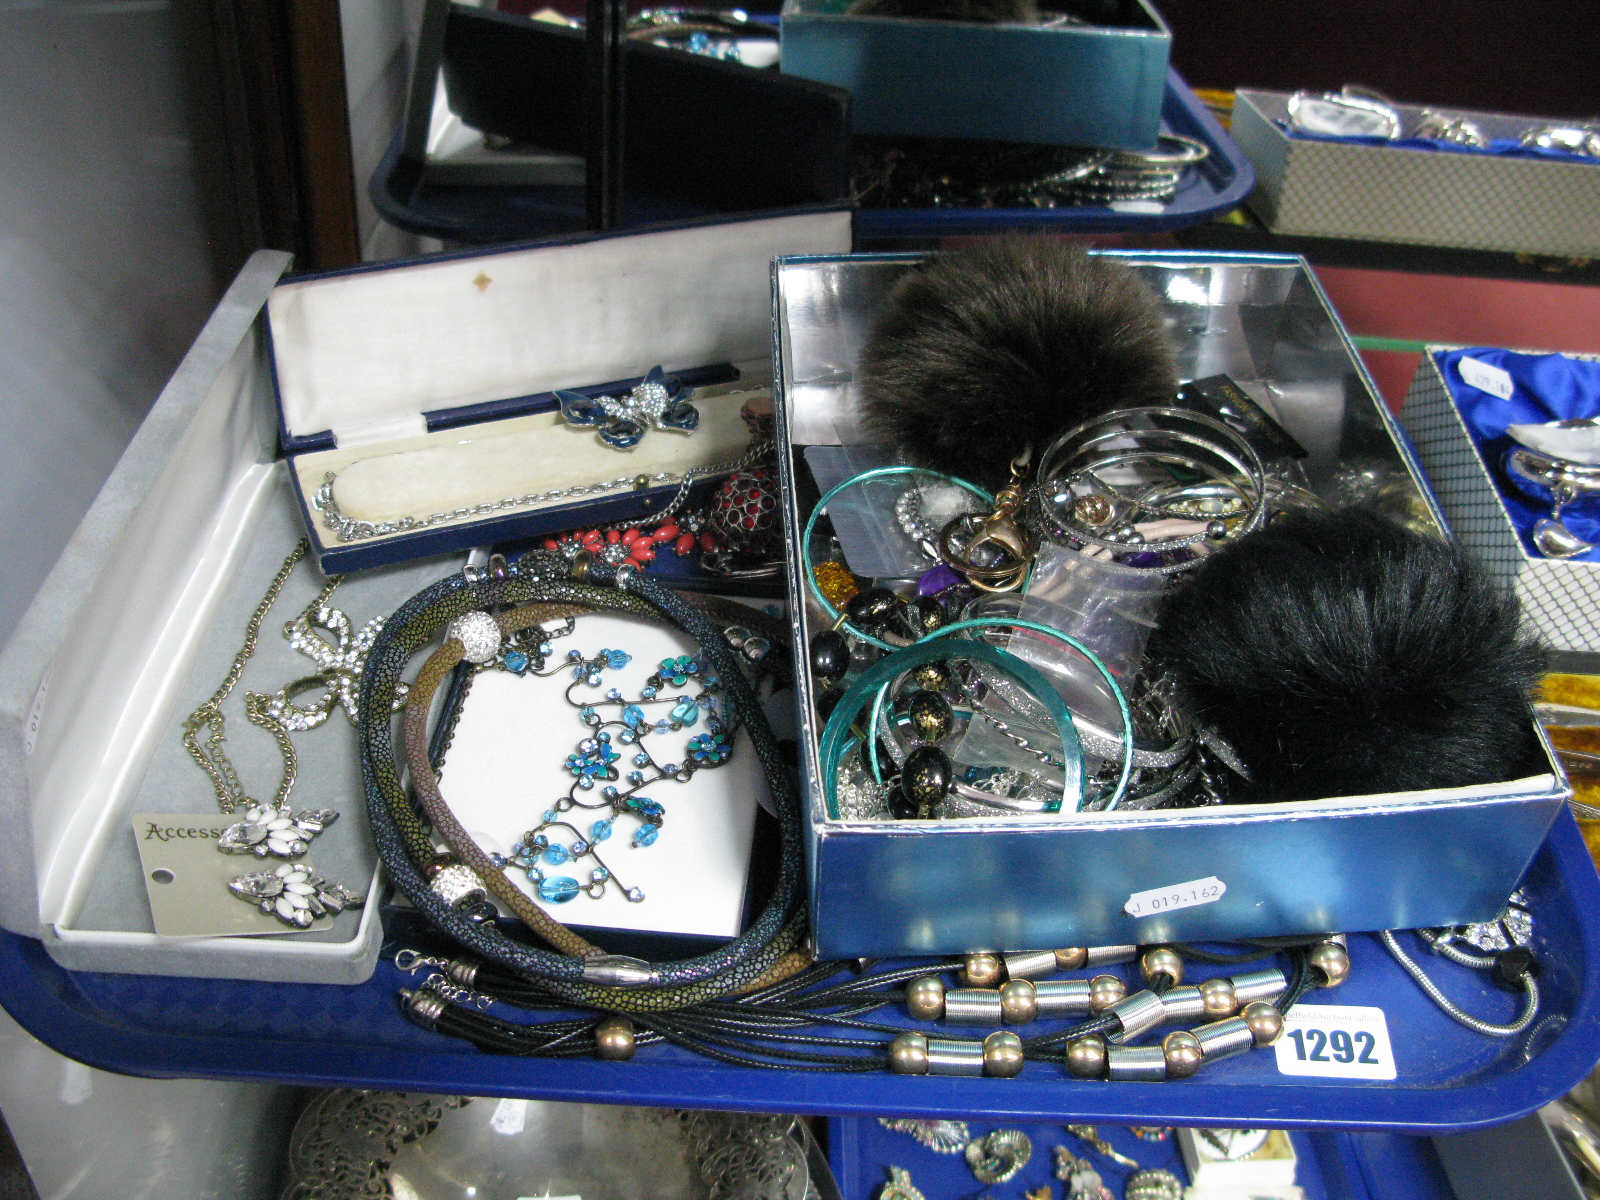 Lot 1292 - A Mixed Lot of Assorted Costume Jewellery, including bangles, necklaces, clip and other earrings,